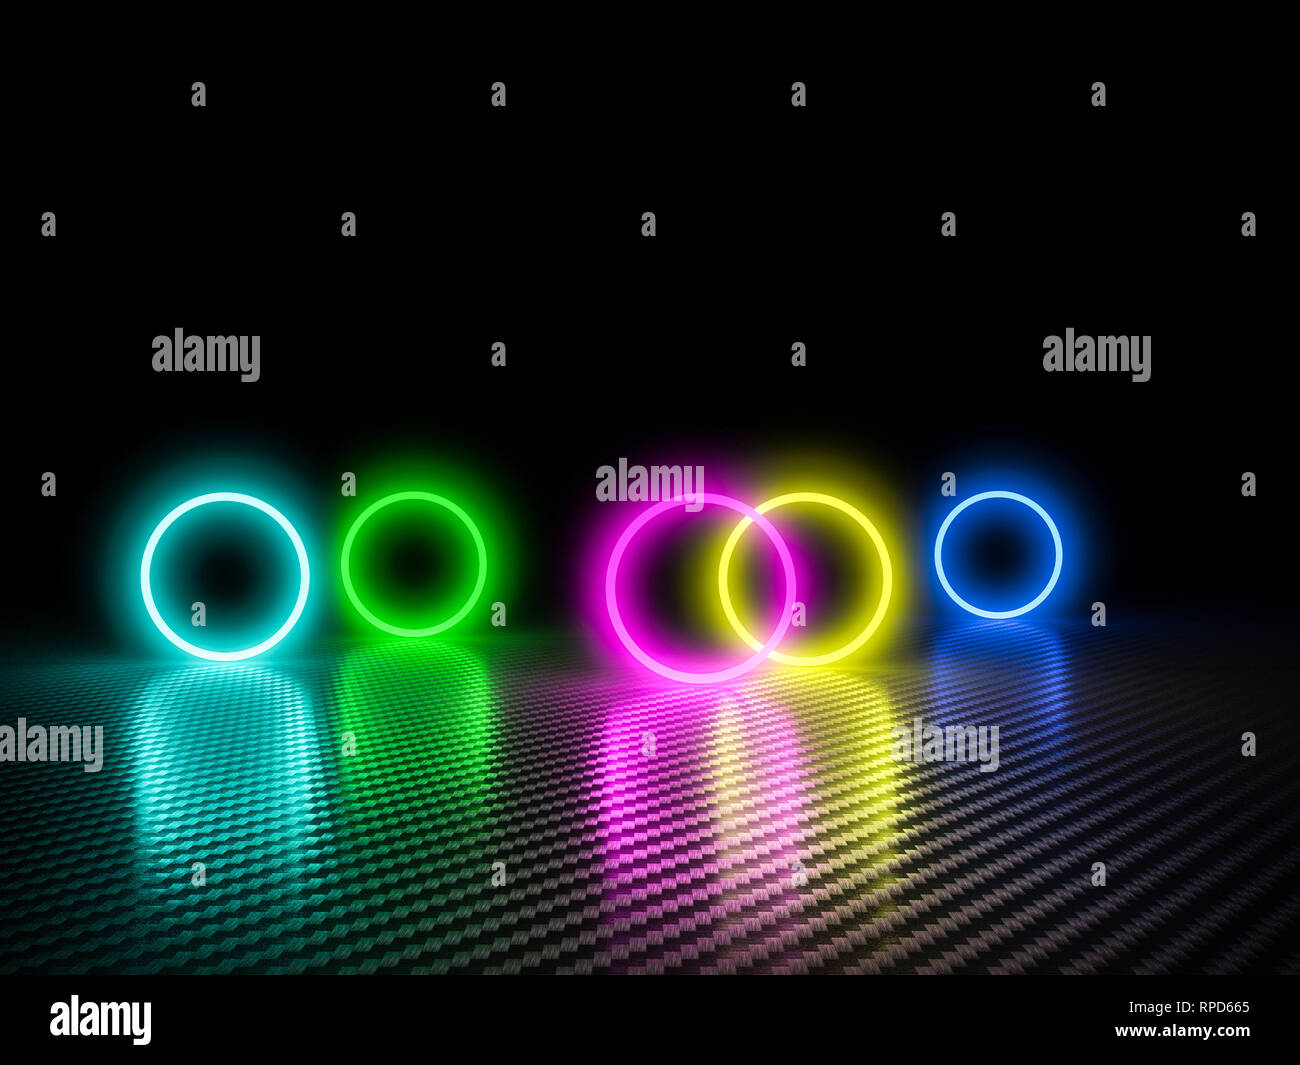 colorful glowing cirlce on carbon fiber background 3d rendering image - Stock Image